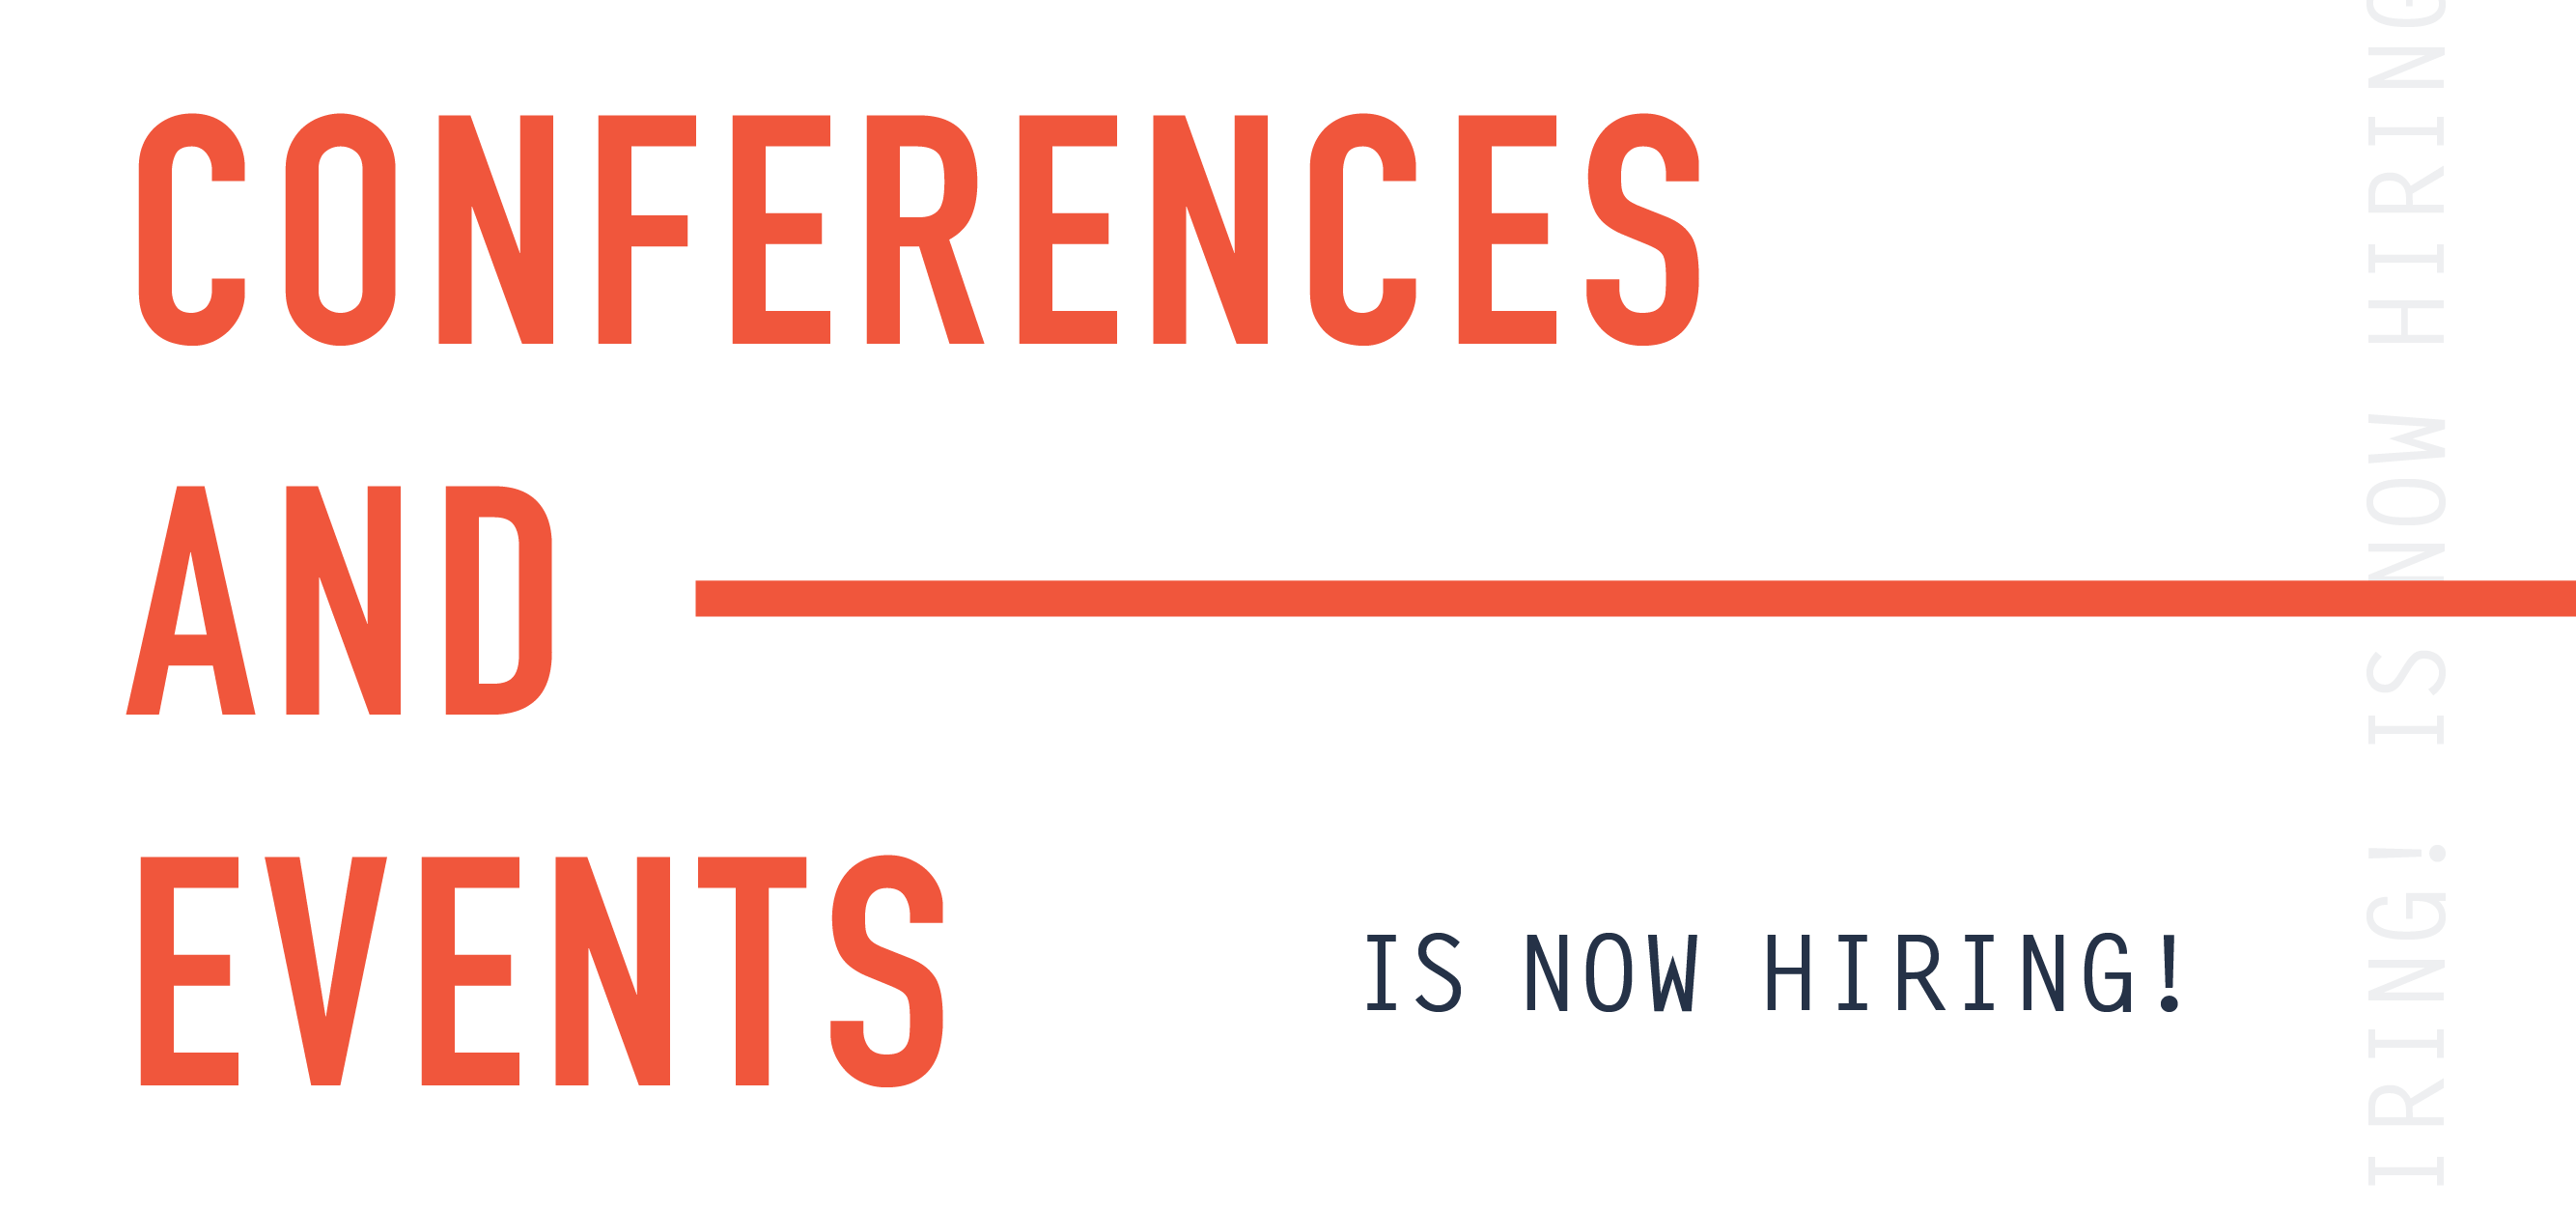 Conference and Events Hiring